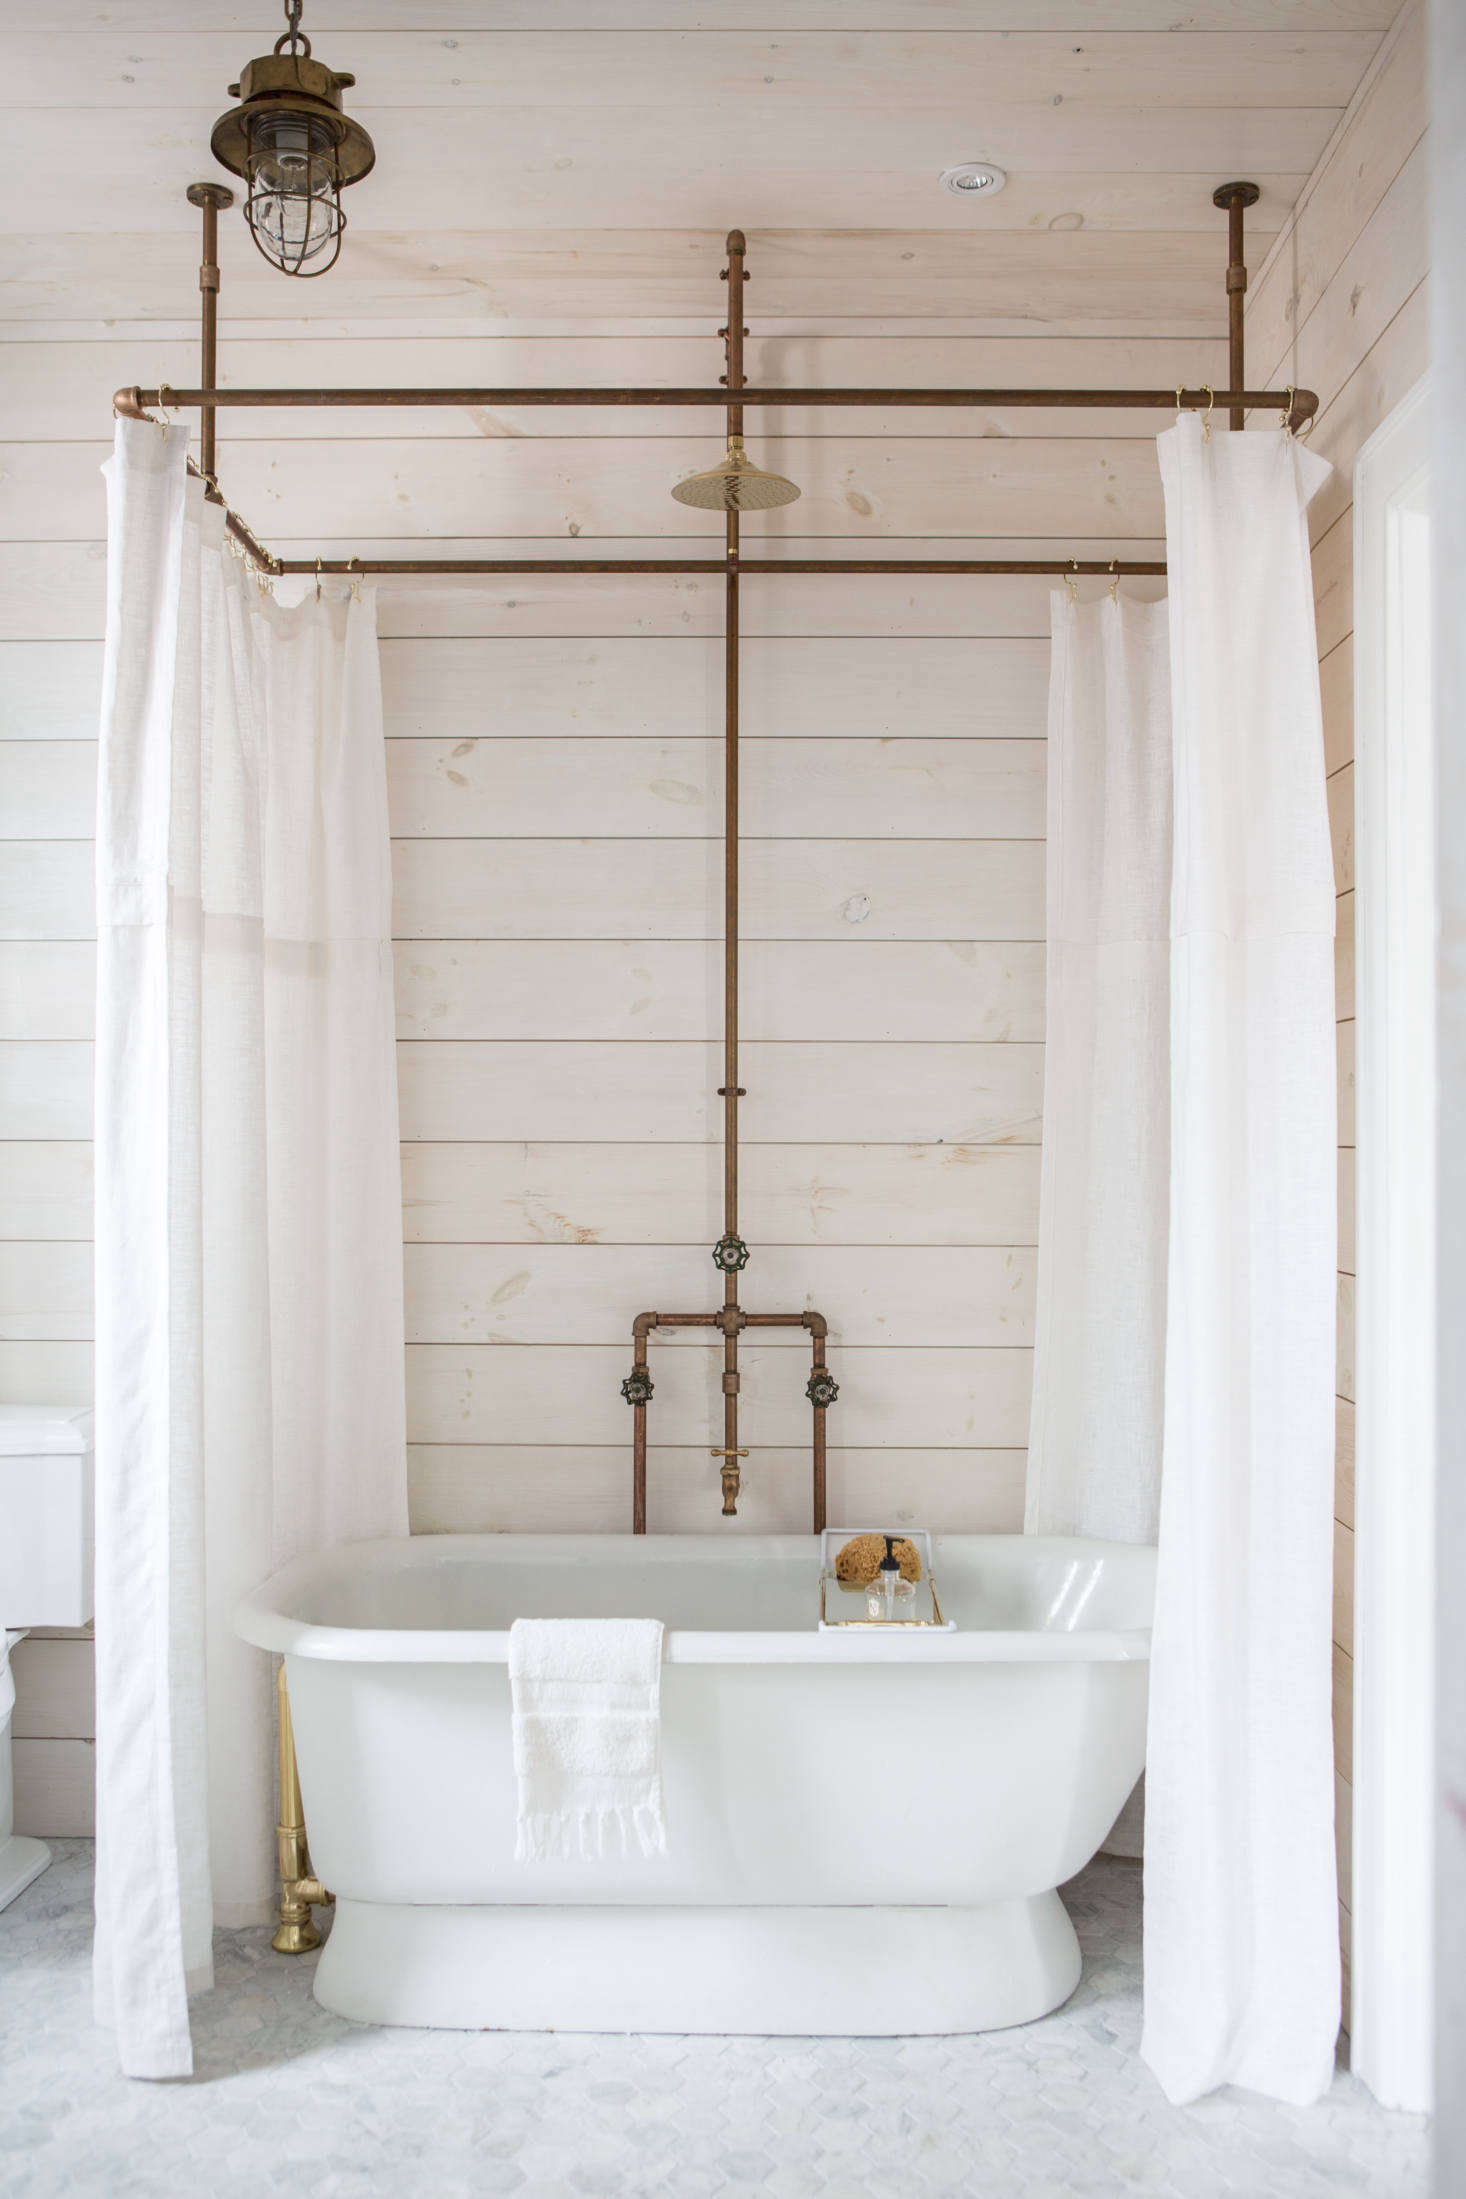 Diy Clawfoot Tub Shower Curtain Rod.A Diy Shower Curtain Hoop Made From Brass Pipes By Zio Sons